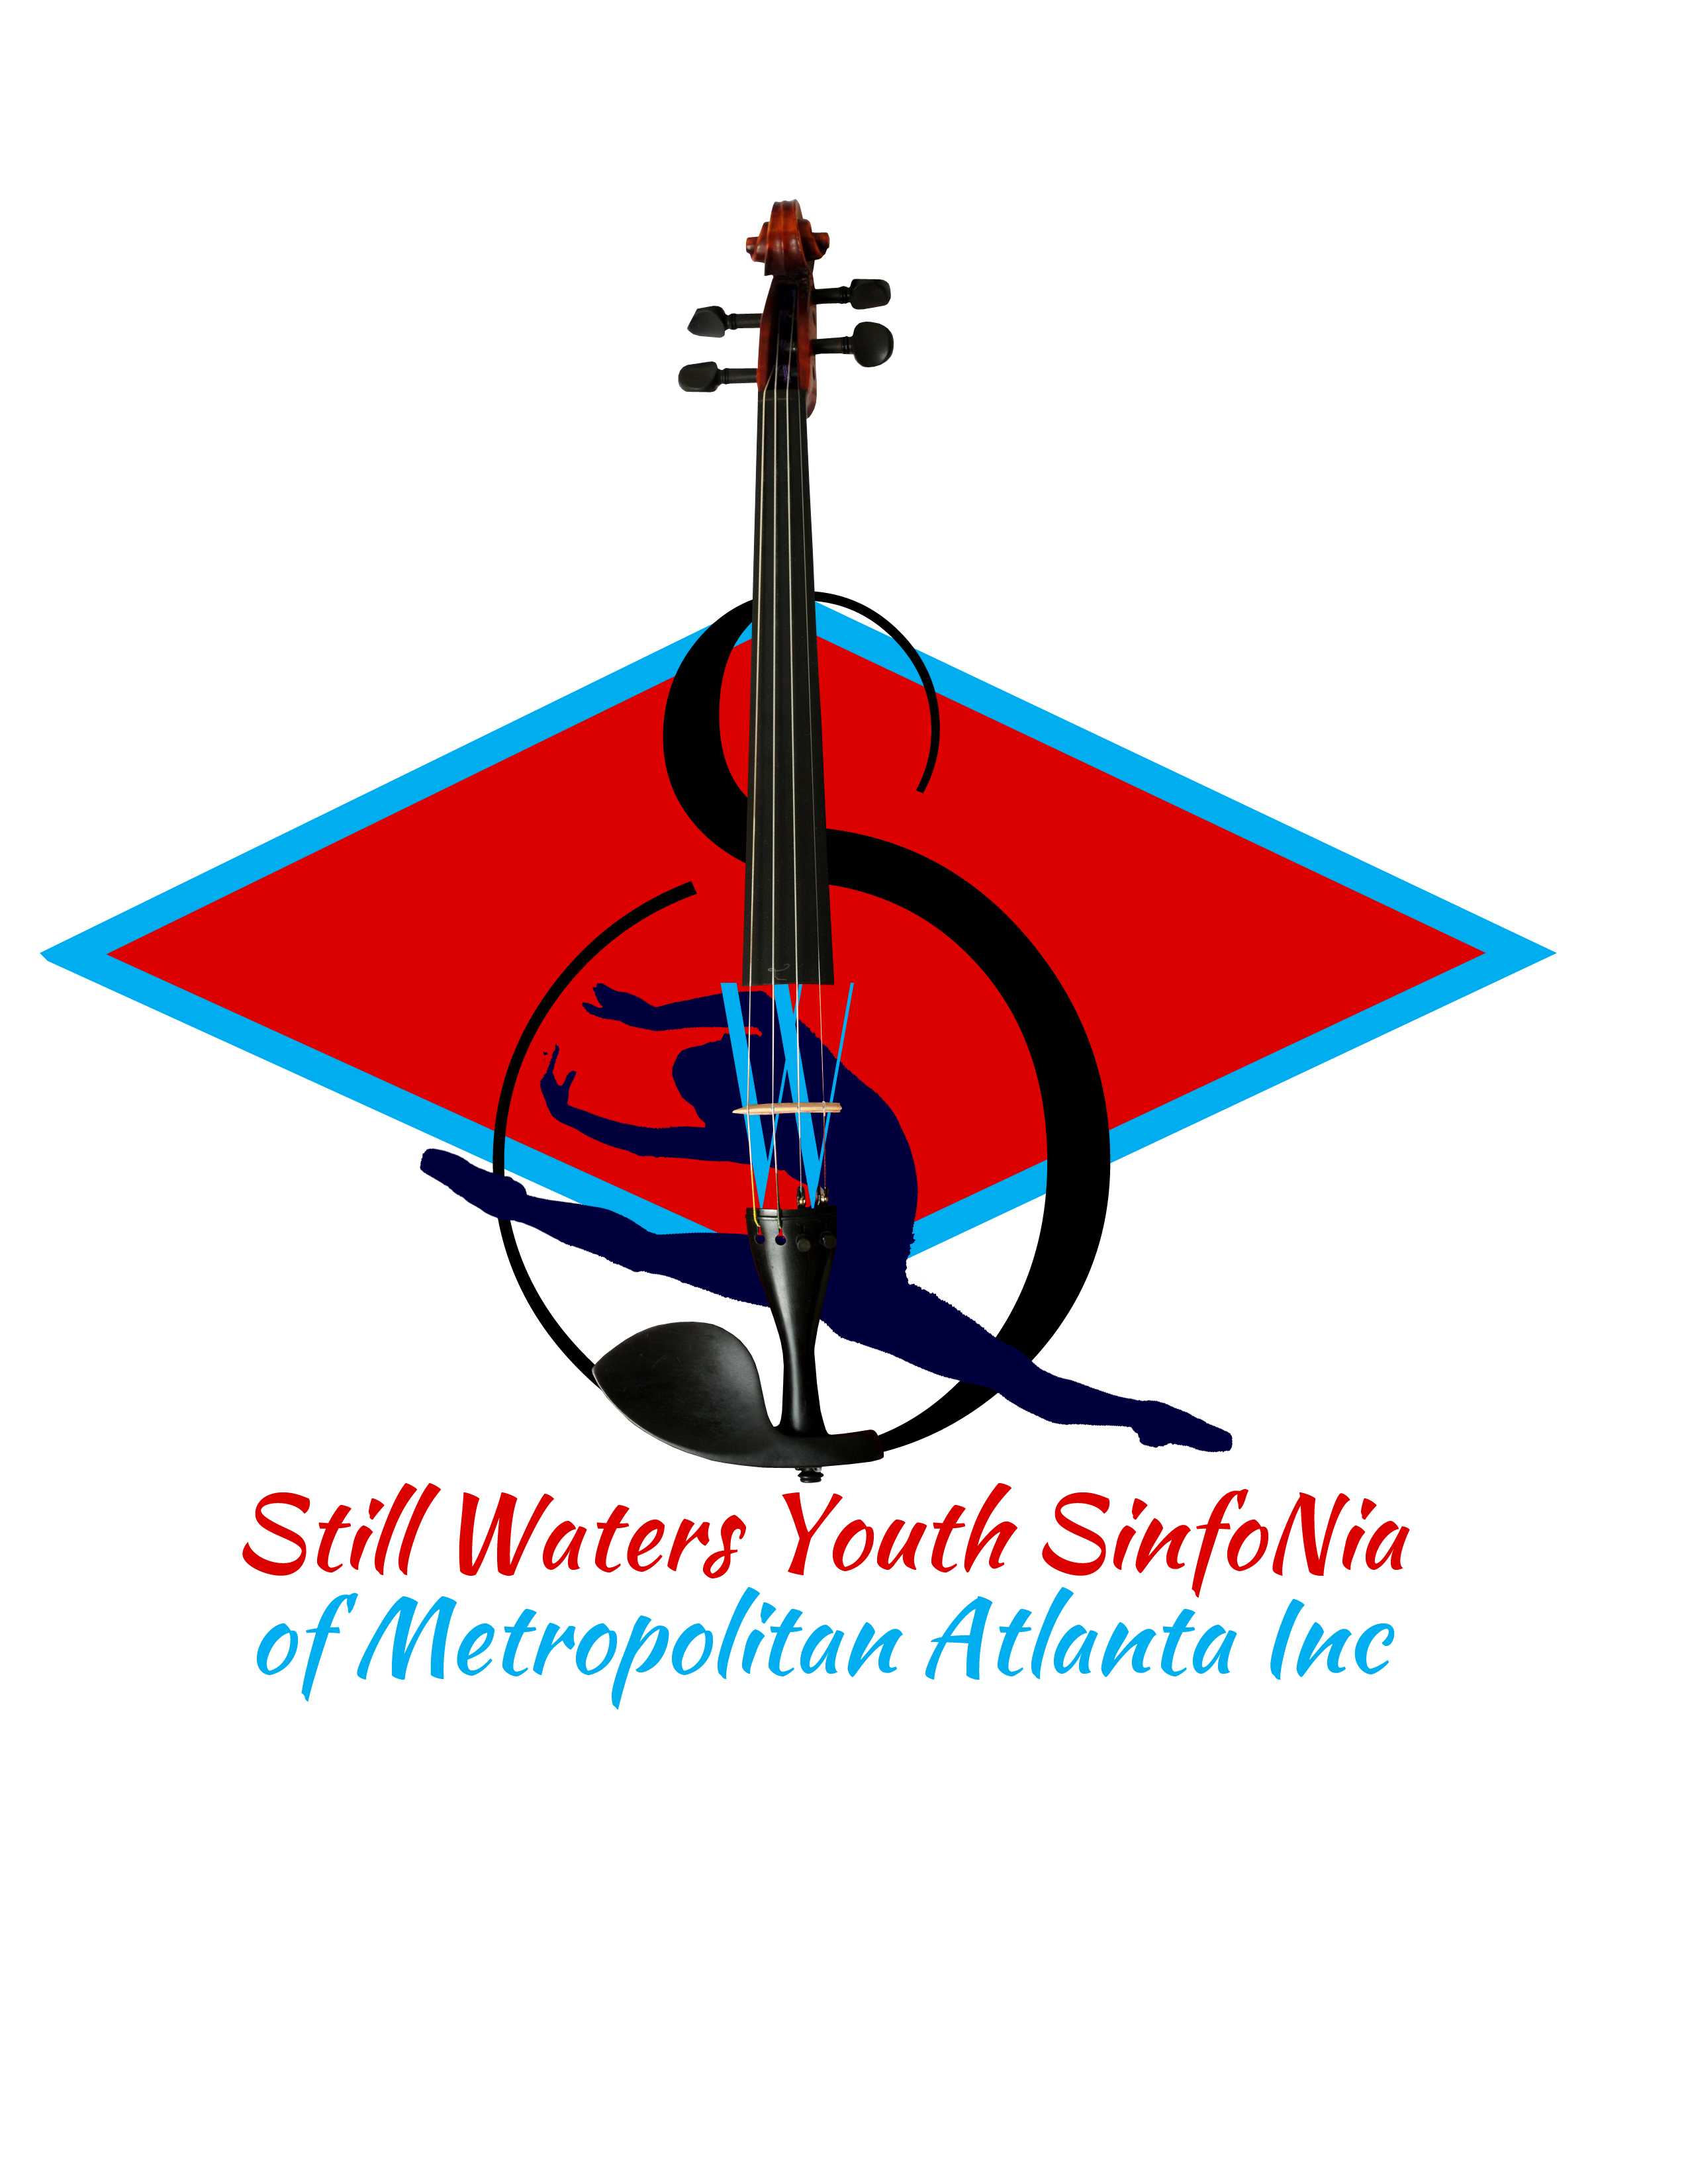 Sinfo-Nia Youth Orchestra - Black Owned